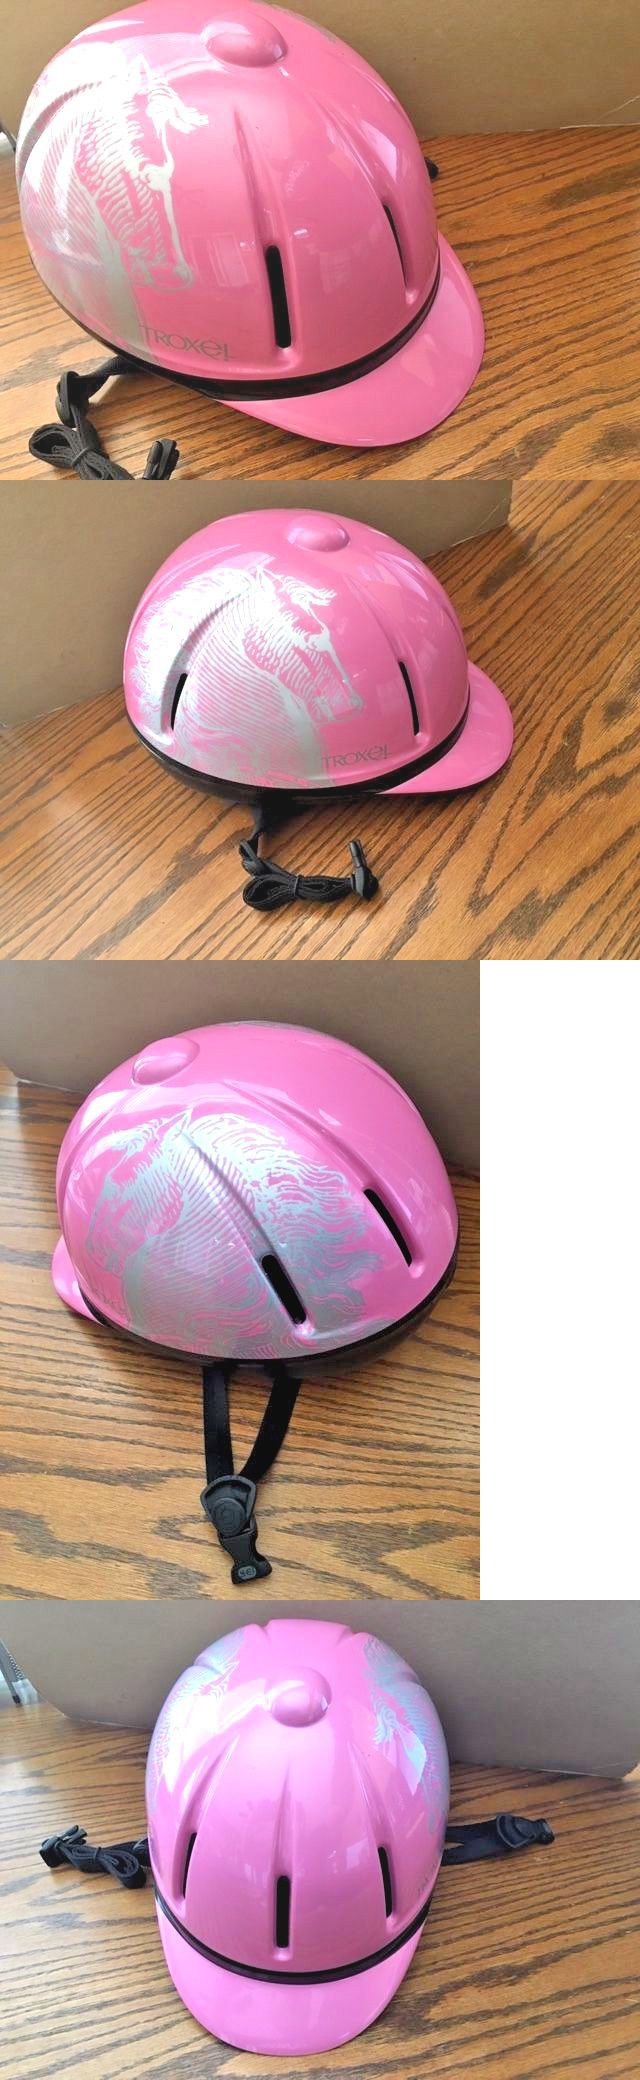 Riding Helmets 47269: New Troxel Legacy English Horse Riding Helmet Size Small - Pink Antiquus -> BUY IT NOW ONLY: $39.99 on eBay!